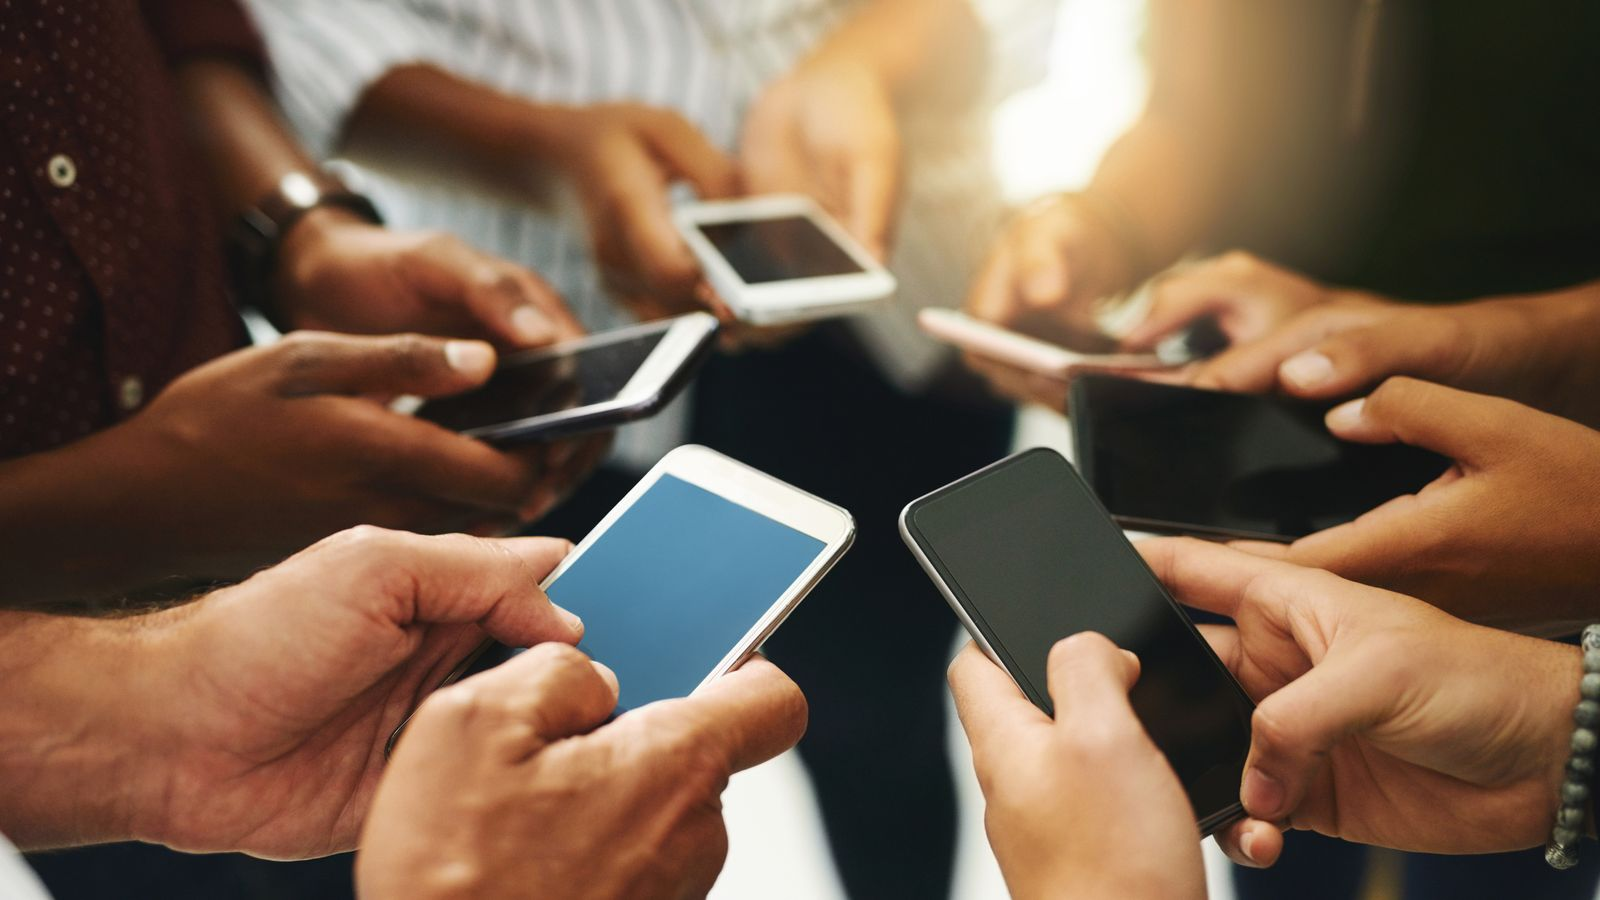 Research paper/ cell phone technology